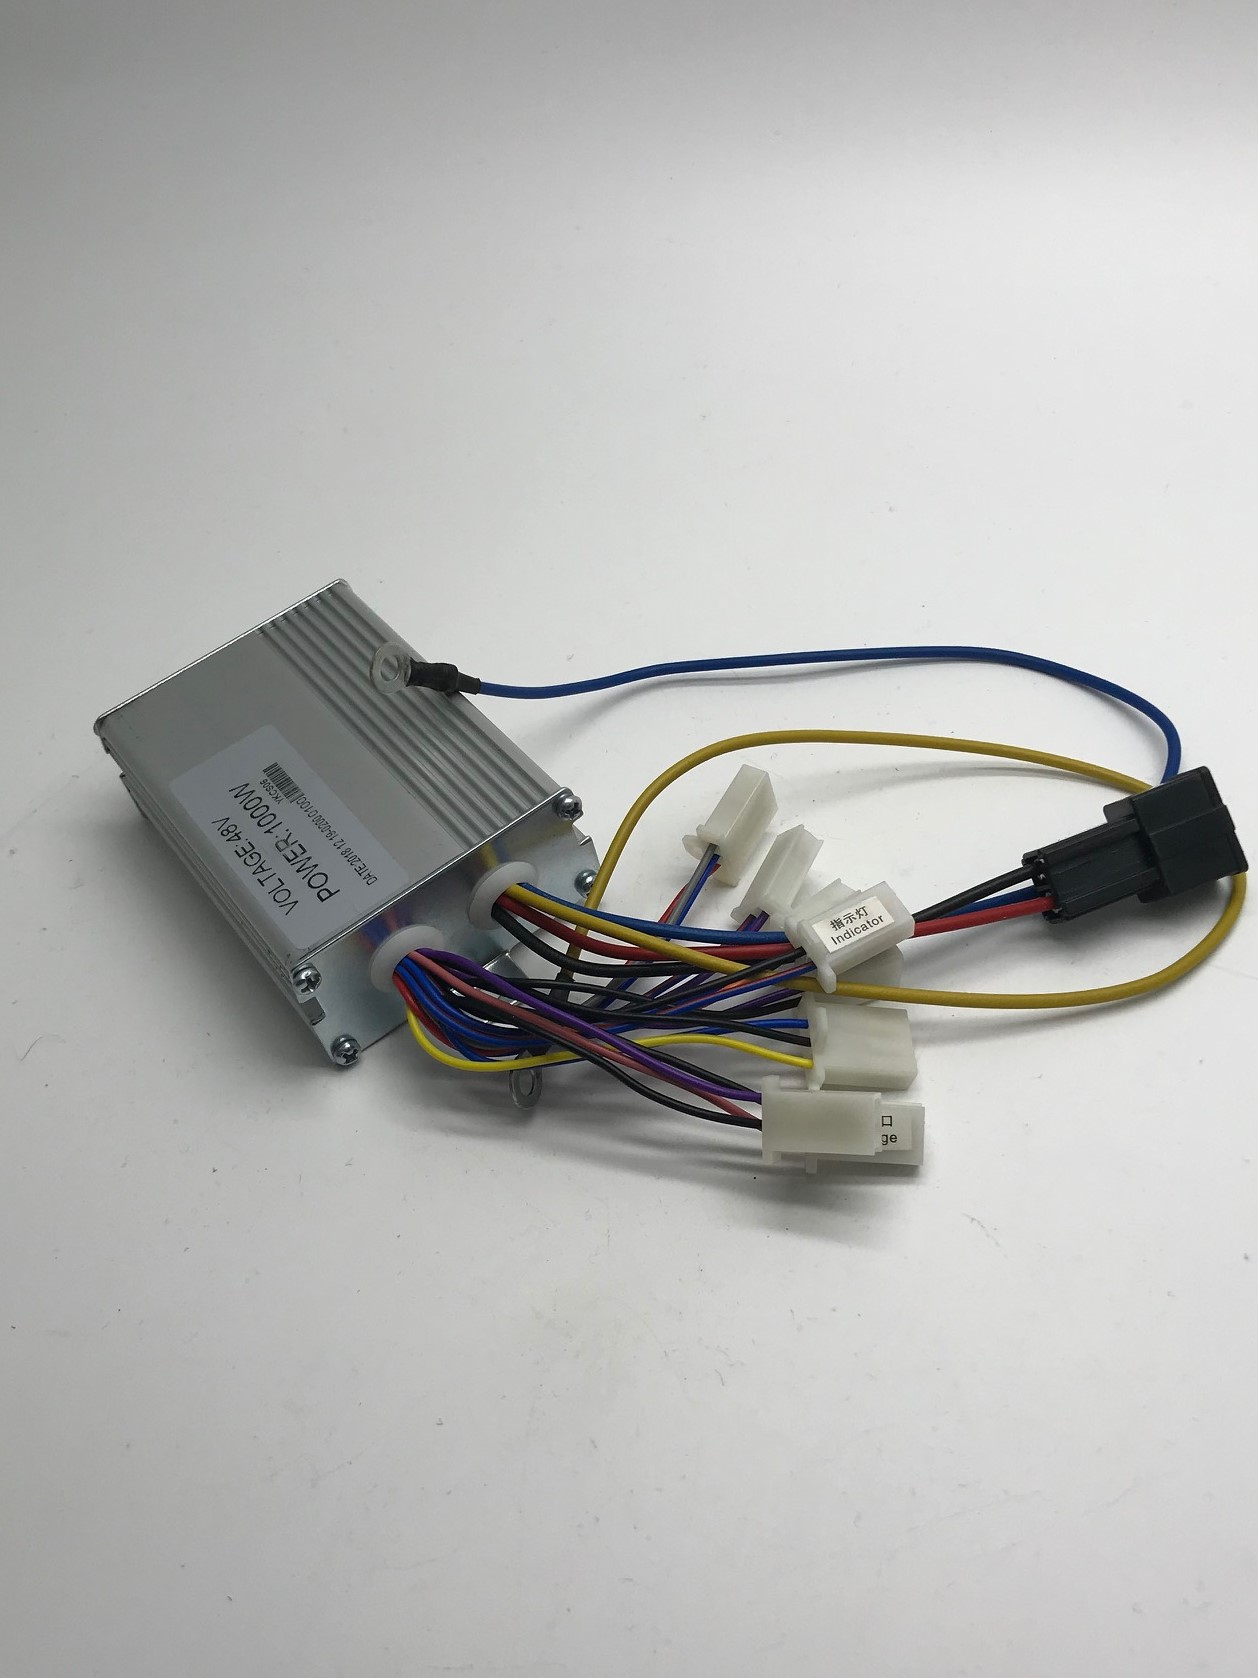 2019 Onwards Style 1000W Go Kart Controller